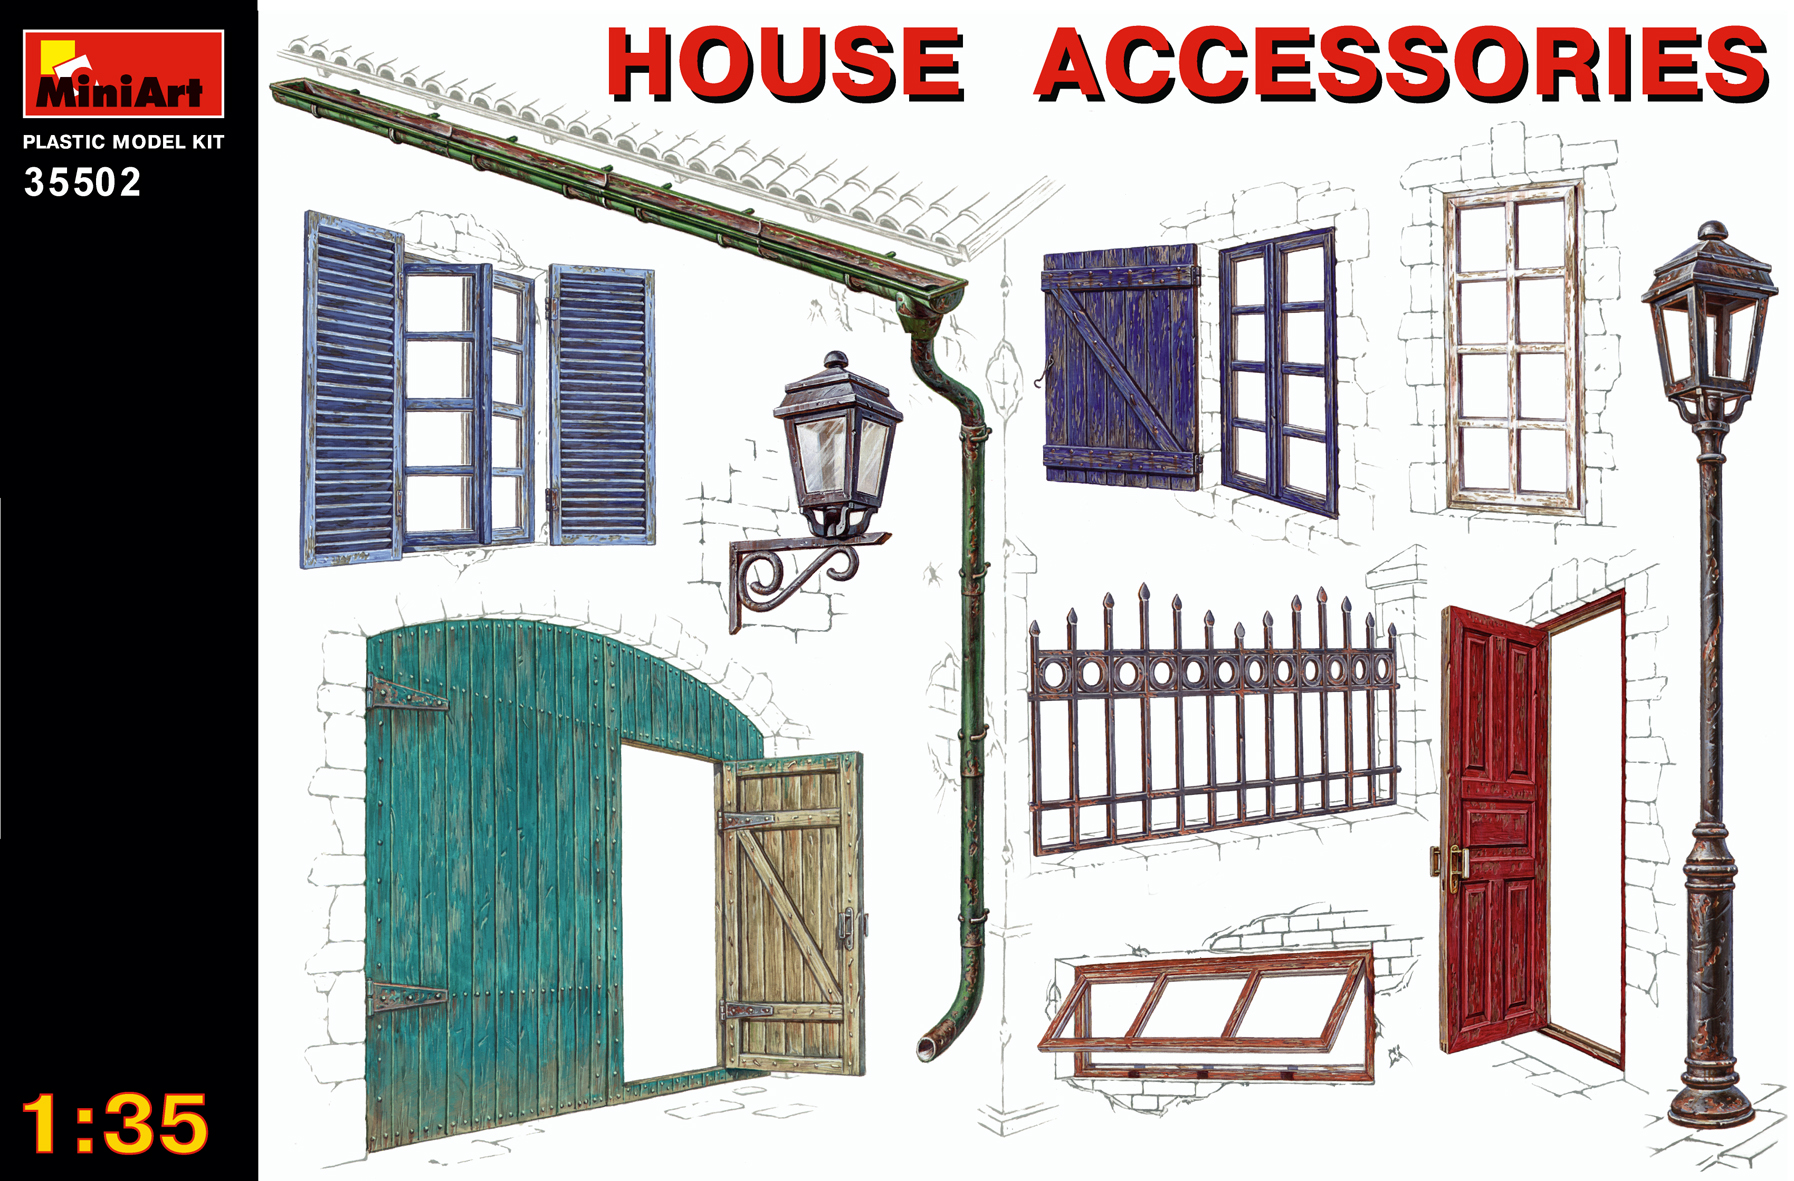 HOUSE ACCESSORIES